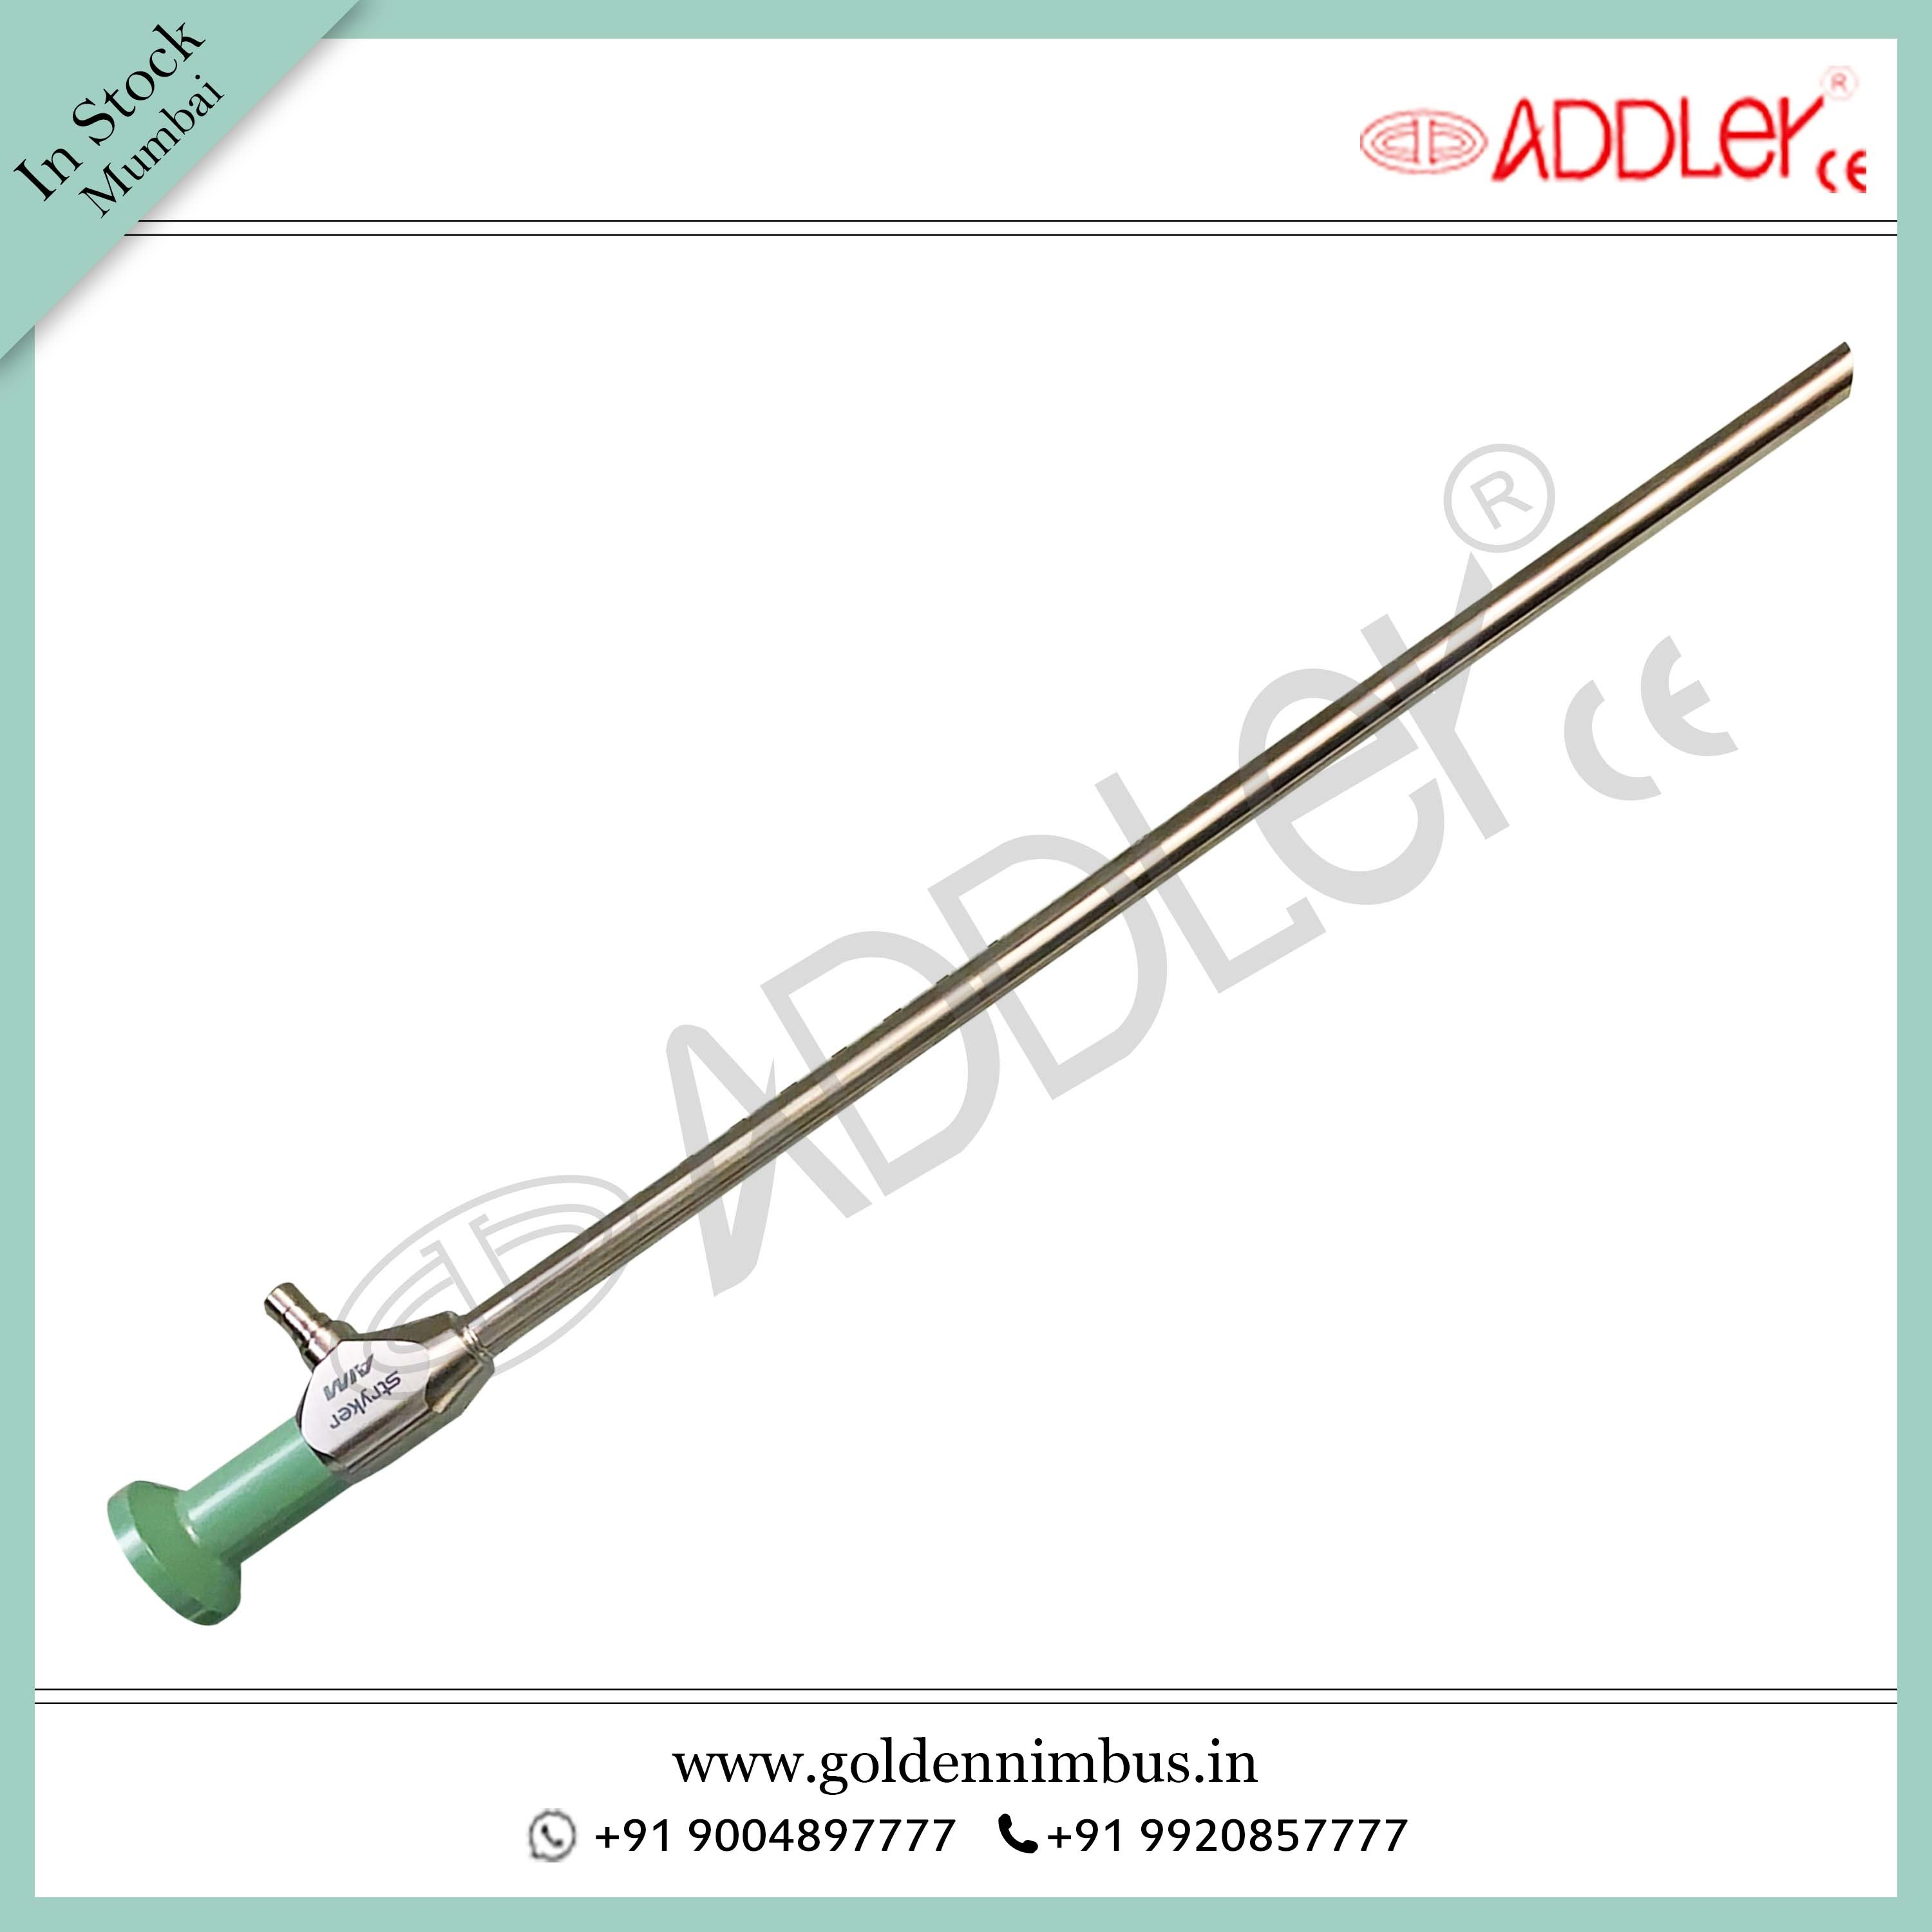 Stryker Aim Laparoscope 10mm 30 Degree